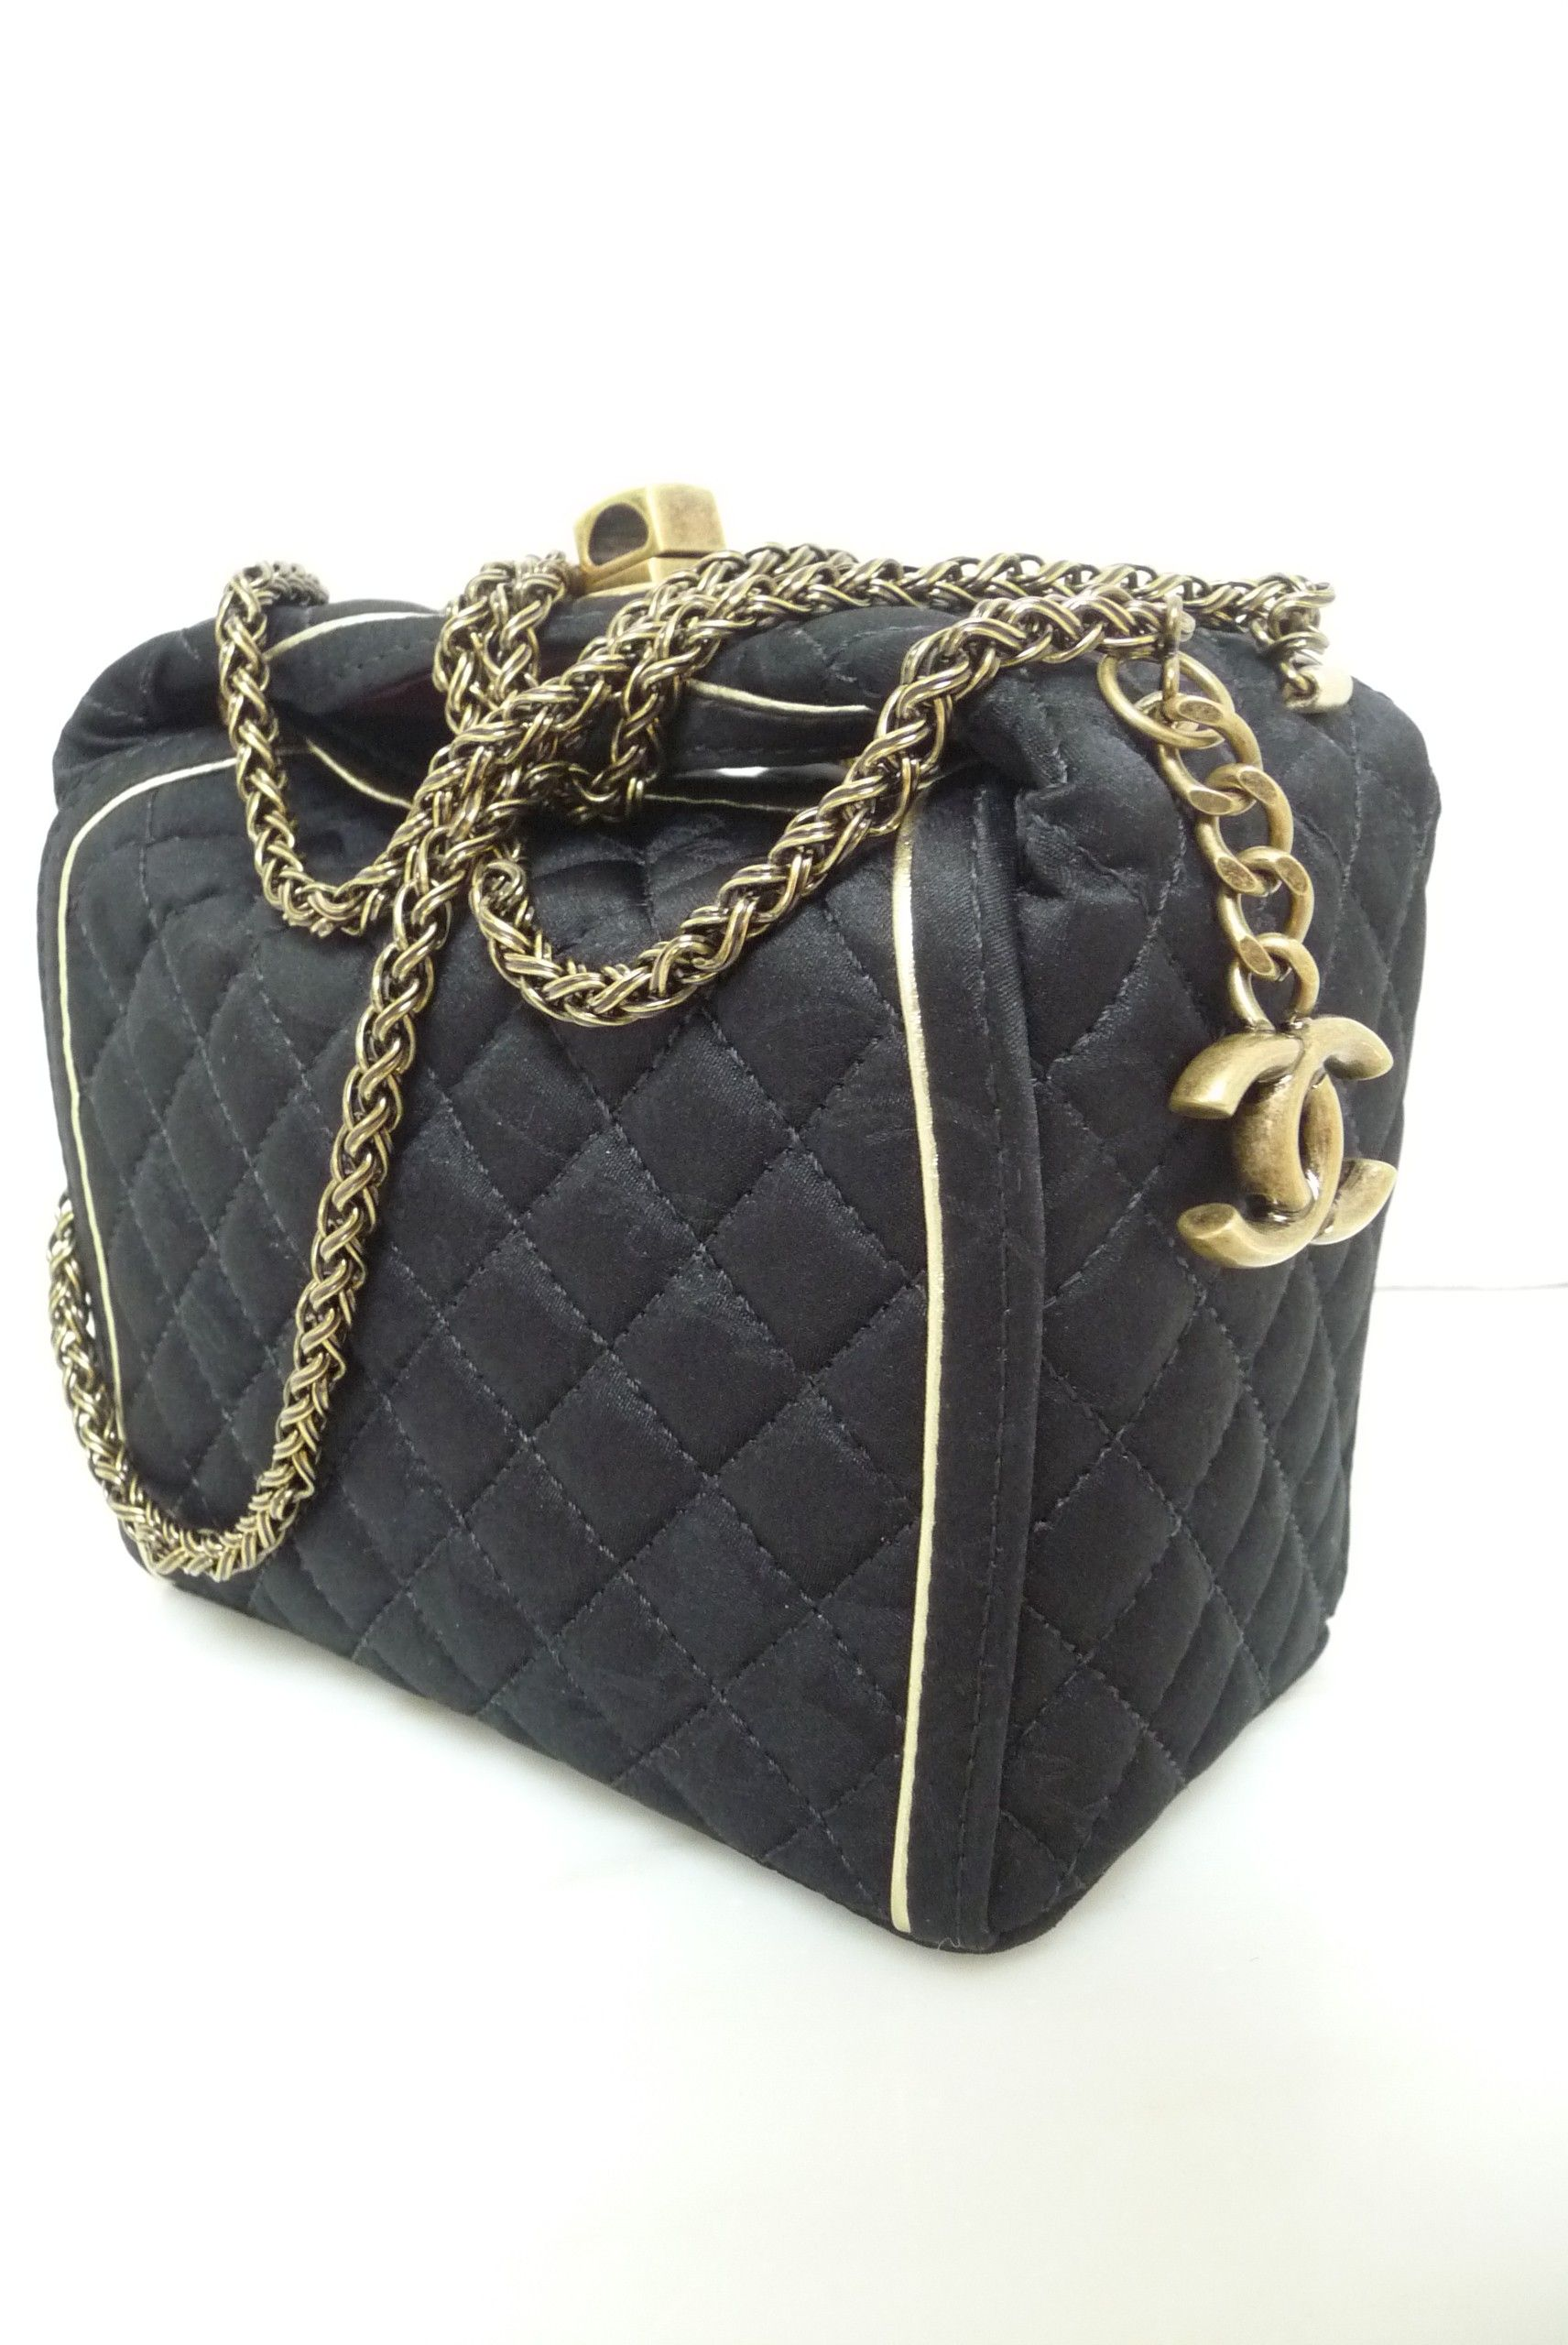 d234627ccd Chanel ::: Black Satin Evening Bag Limited Edition Runway | My Style ...